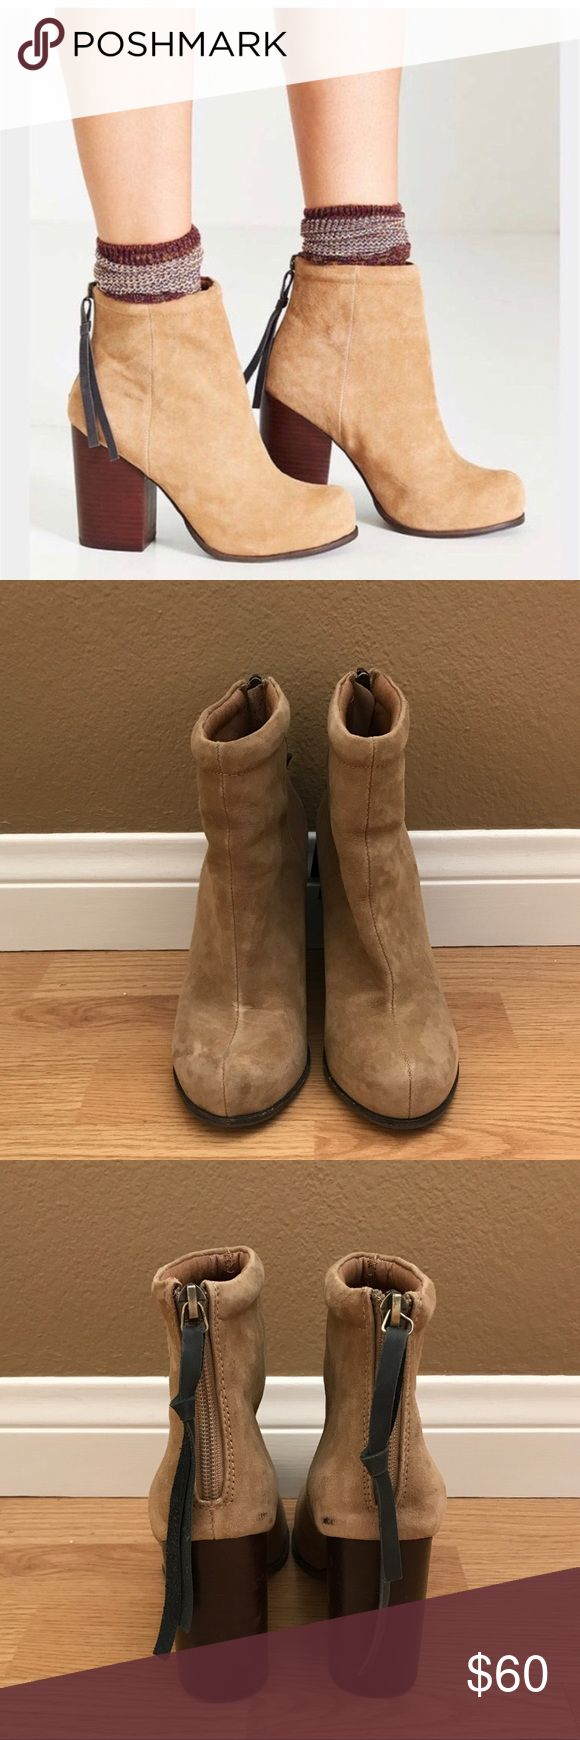 Jeffrey Campbell Beige Rumble Ankle Booties Jeffrey Campbell beige zip up ankle booties with 4 inch wood heels. Only worn a few times, with a few imperfections but pretty good condition!  Size 6. Jeffrey Campbell Shoes Ankle Boots & Booties